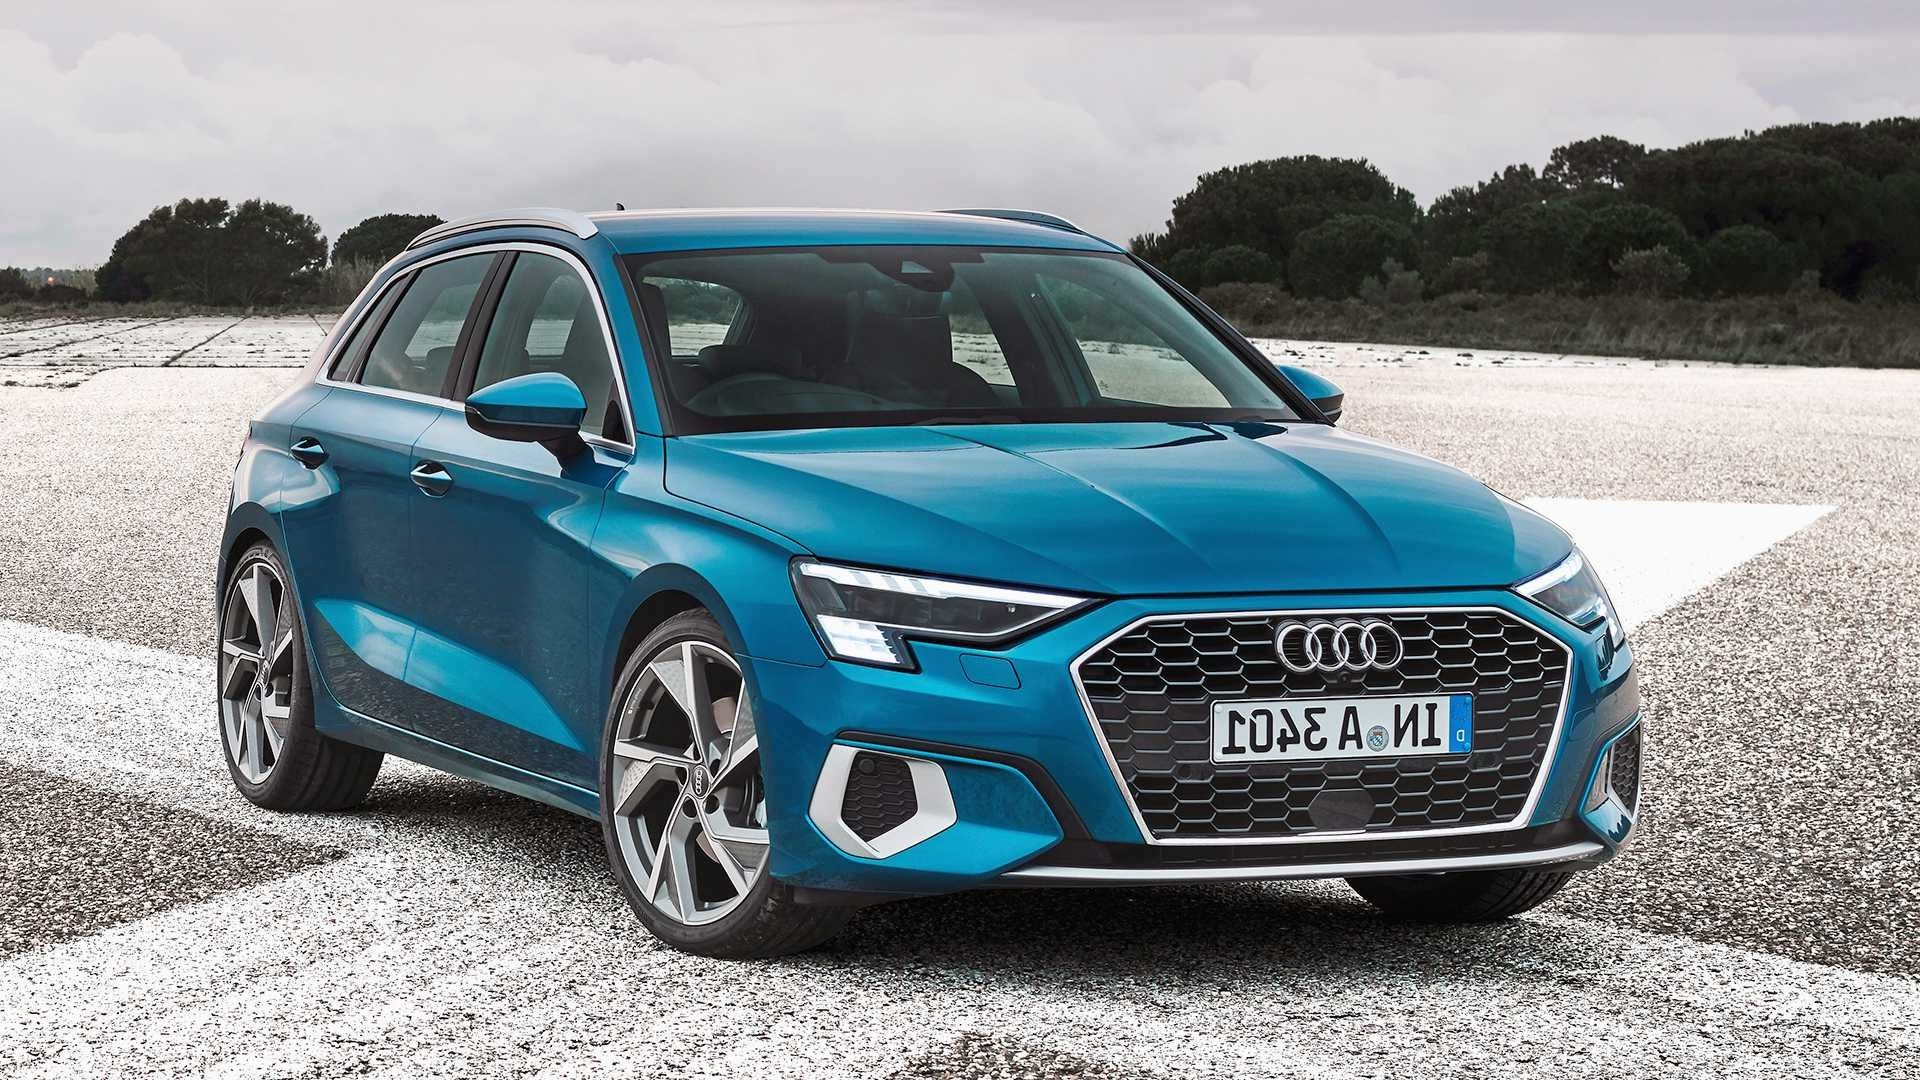 Remarkable 2020 Audi A3 Sportback Introduced With Its ...